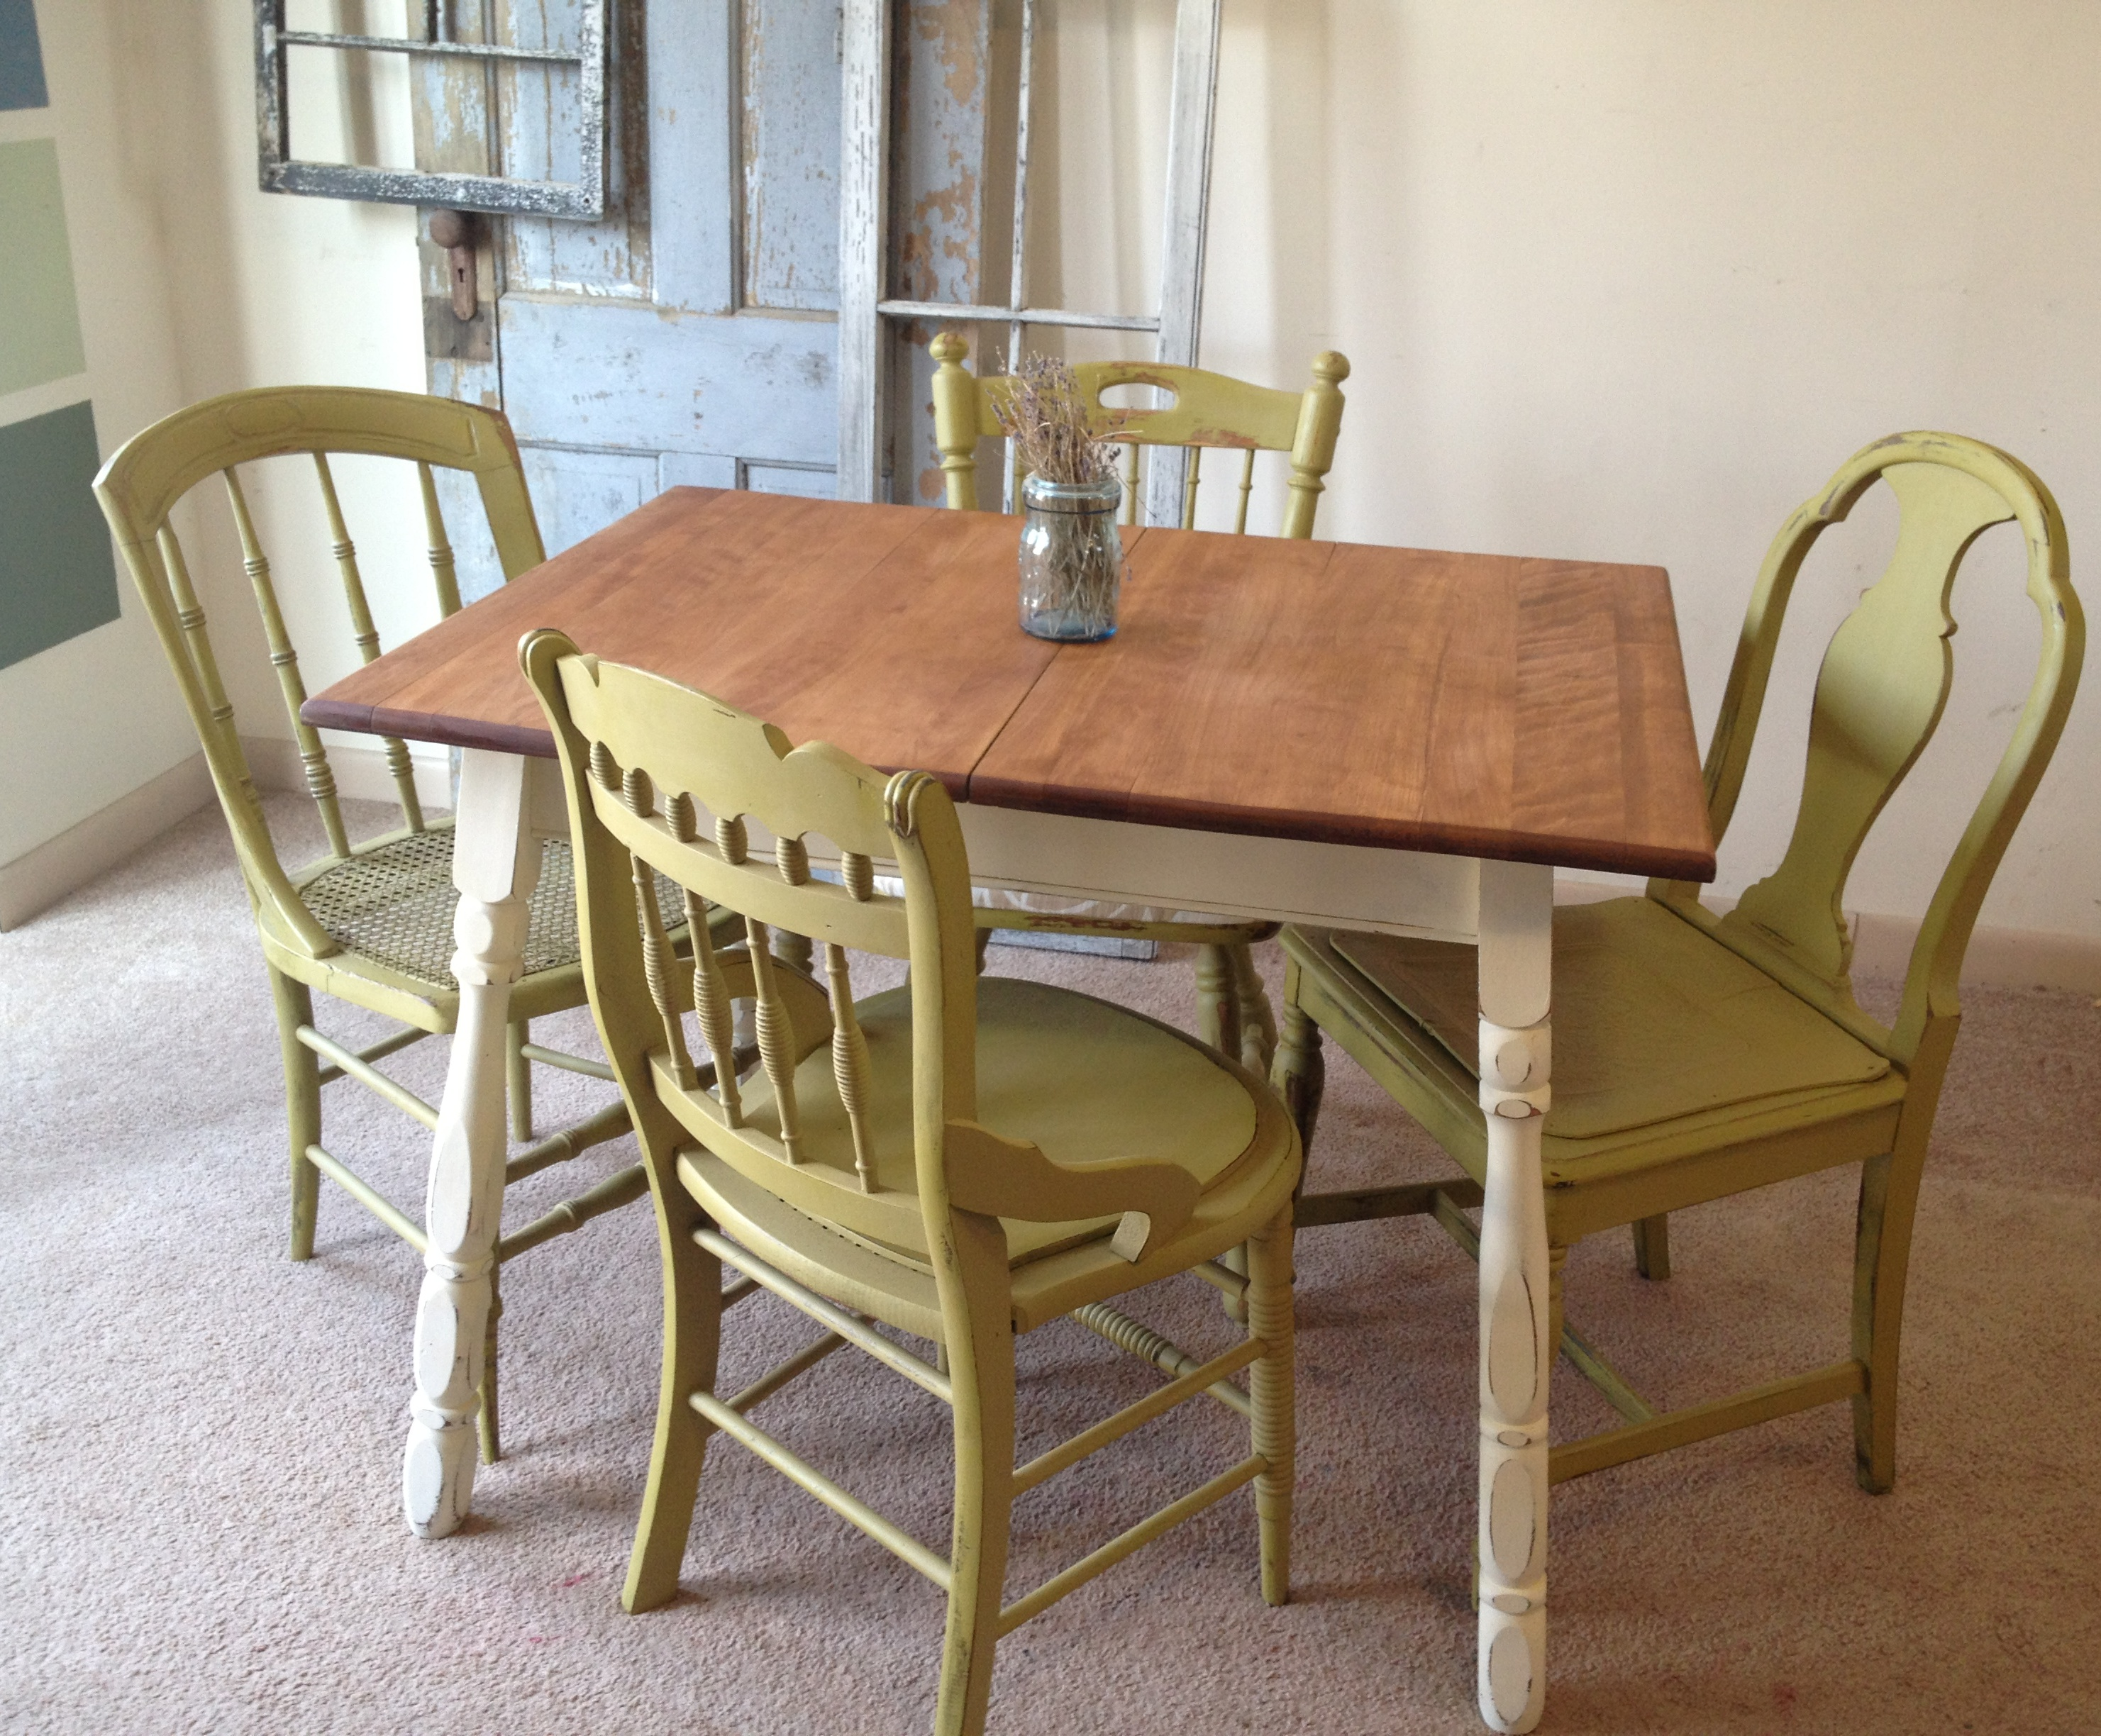 vintage kitchen tables and chairs | interior & exterior doors